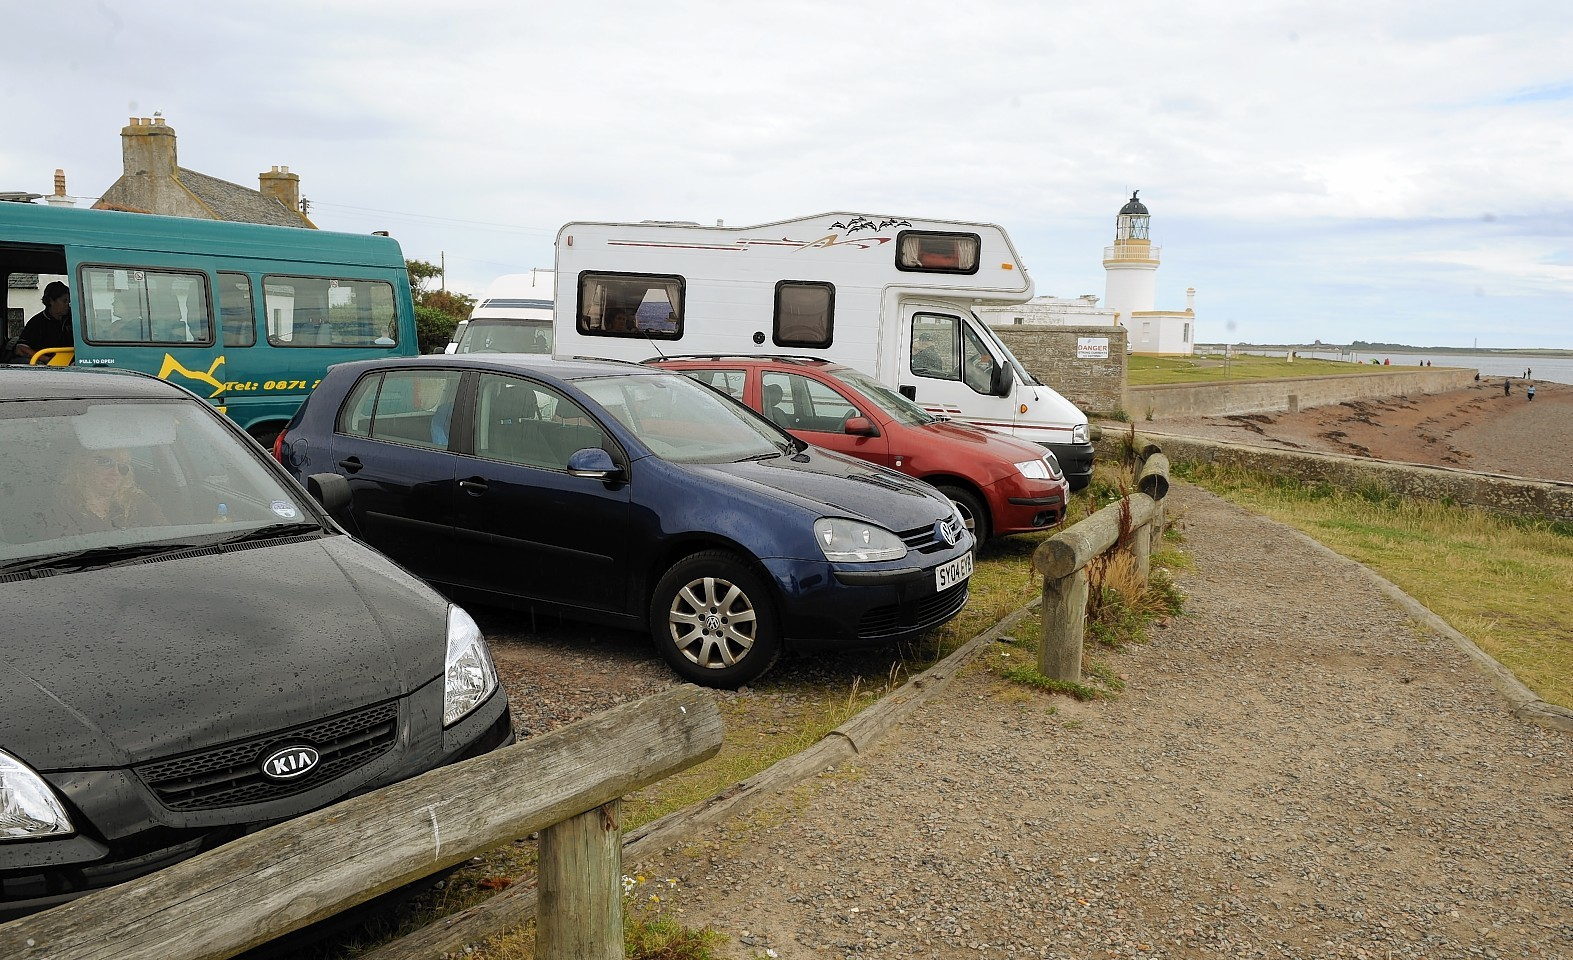 The existing facilities at Chanonry Point